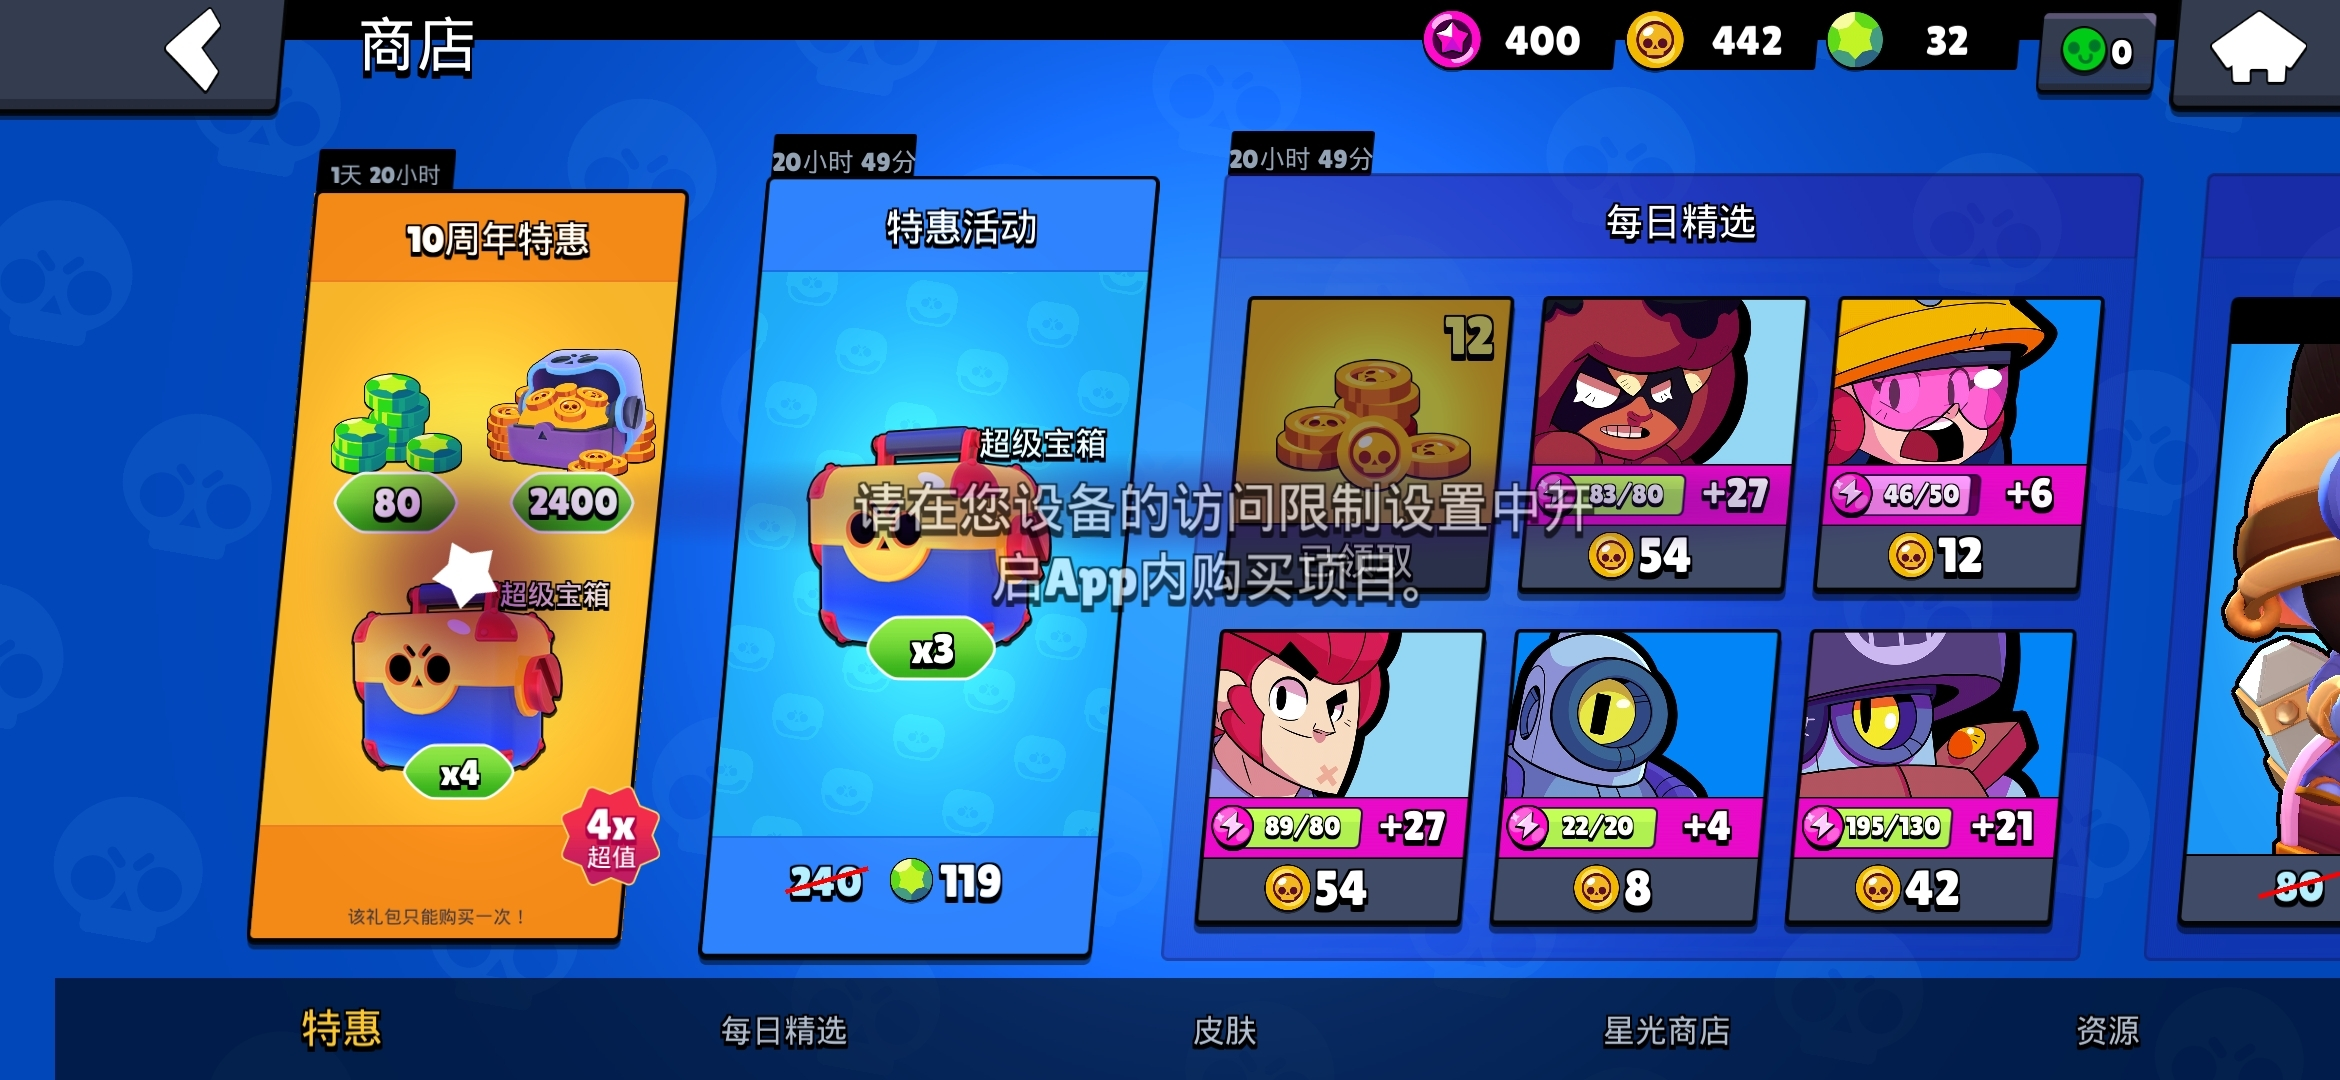 Screenshot_20200514_191057_com.supercell.brawlstars.jpg